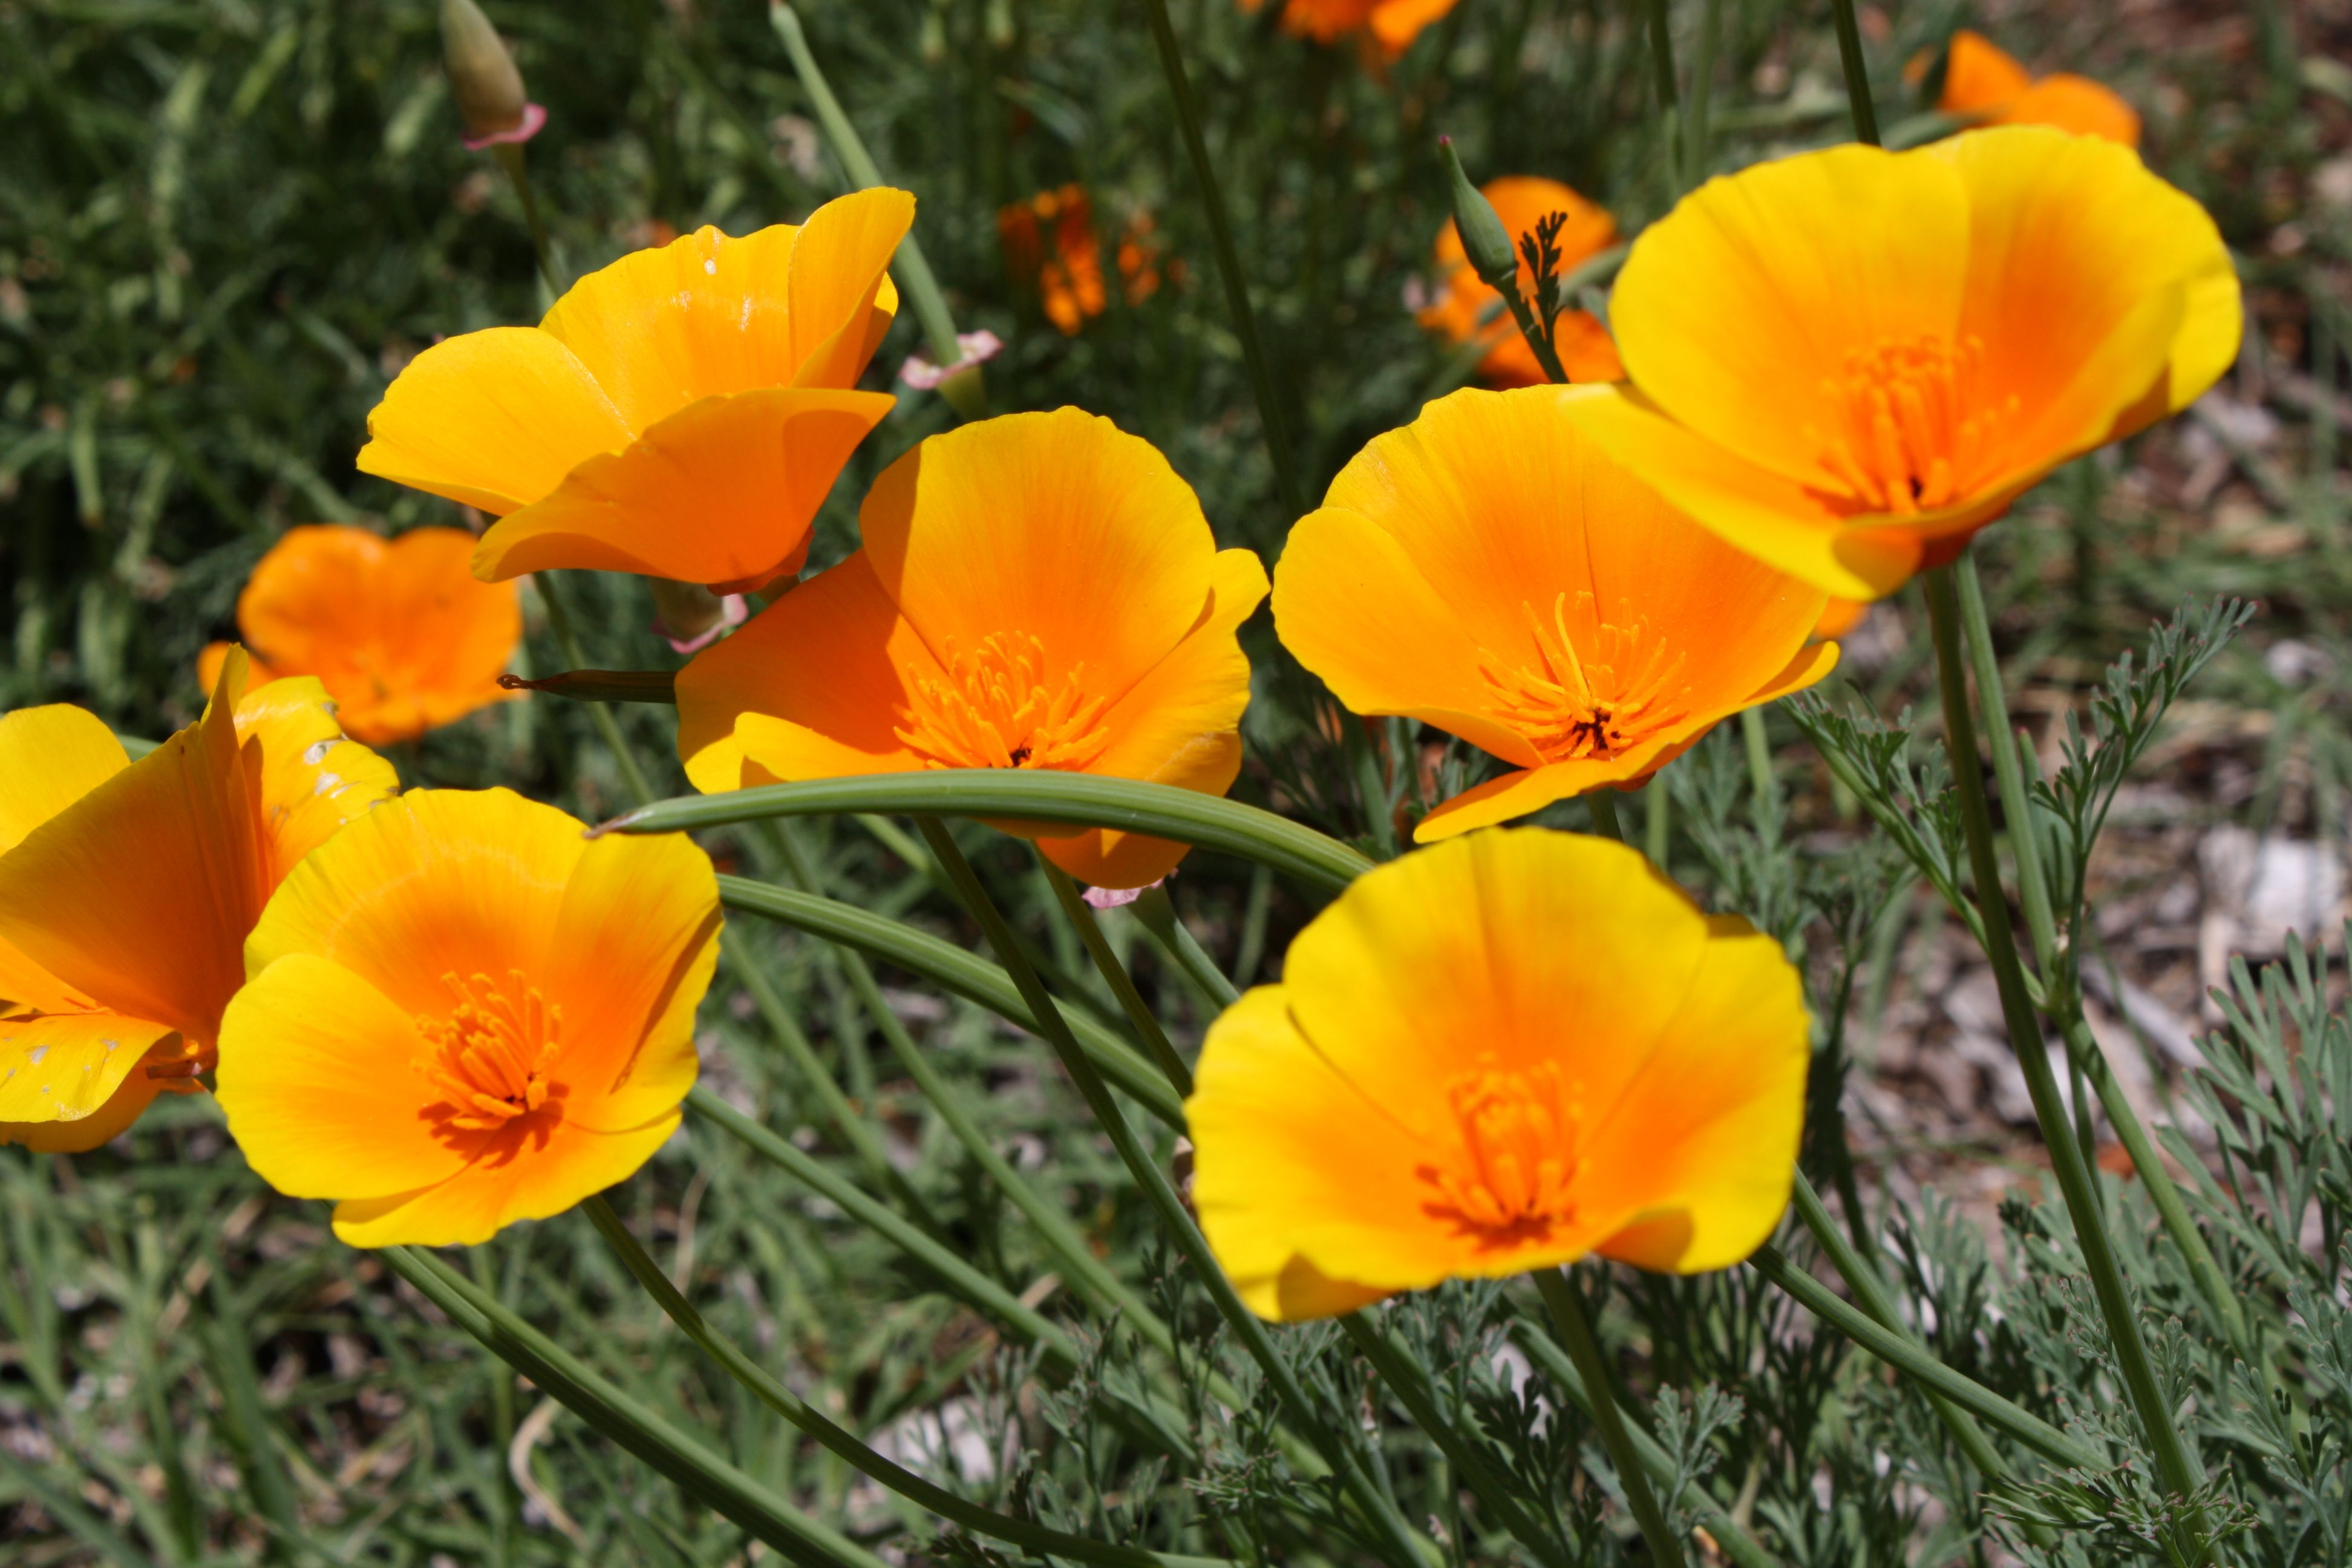 Gold California poppies in my front yard | California ...